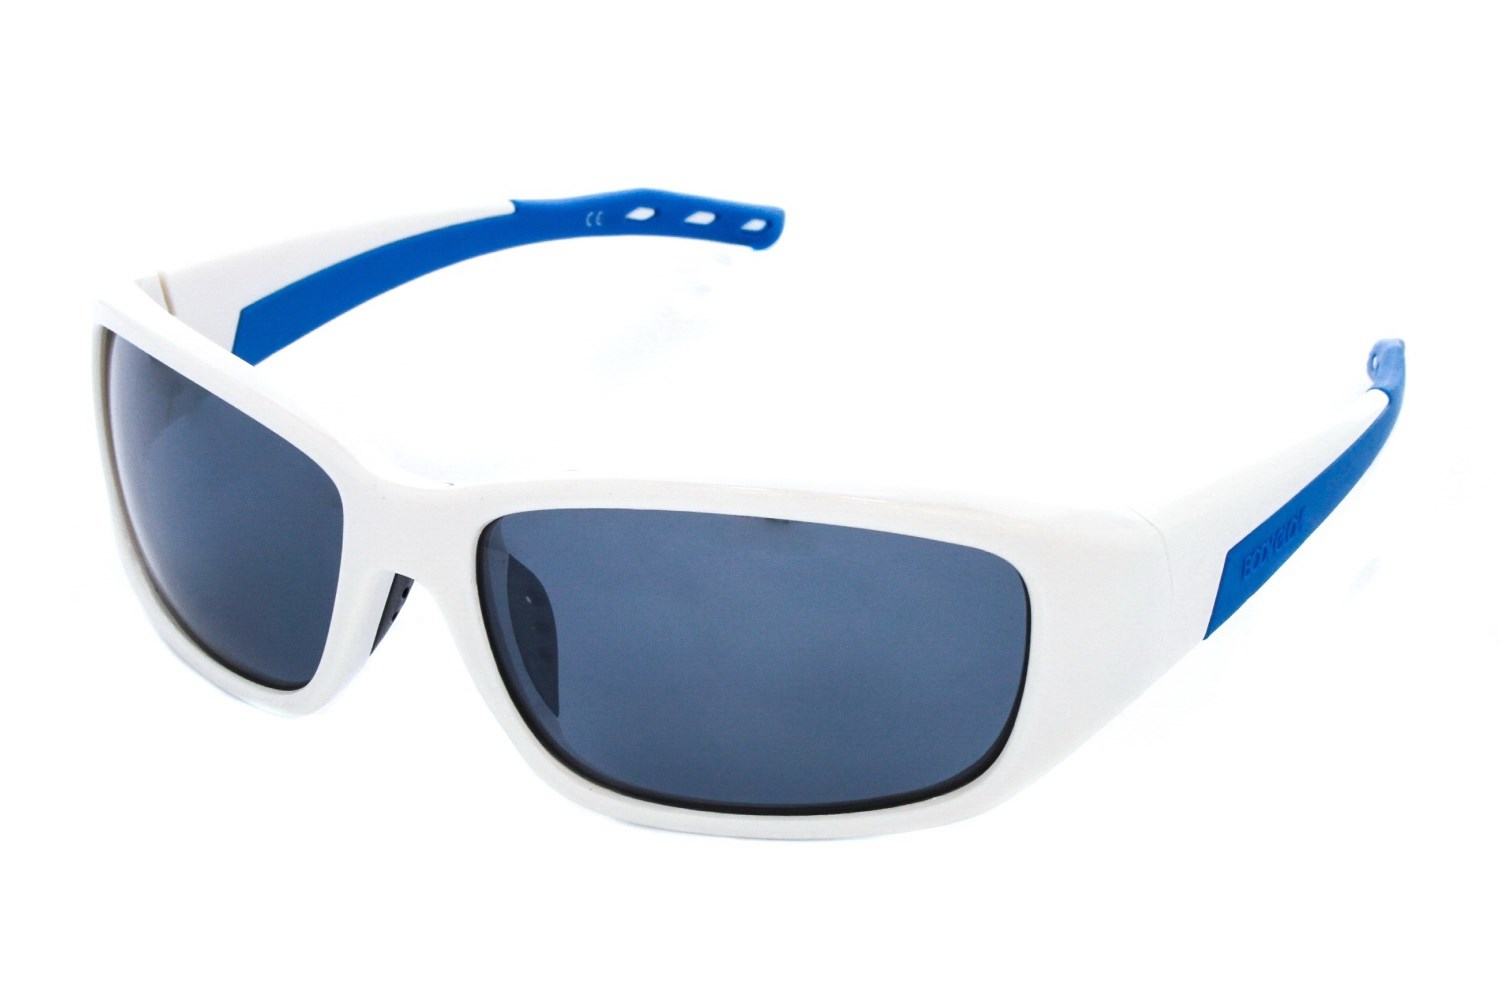 a08dce946cc Sunglasses - Body Glove Eyewear glasses and contact lenses superstore